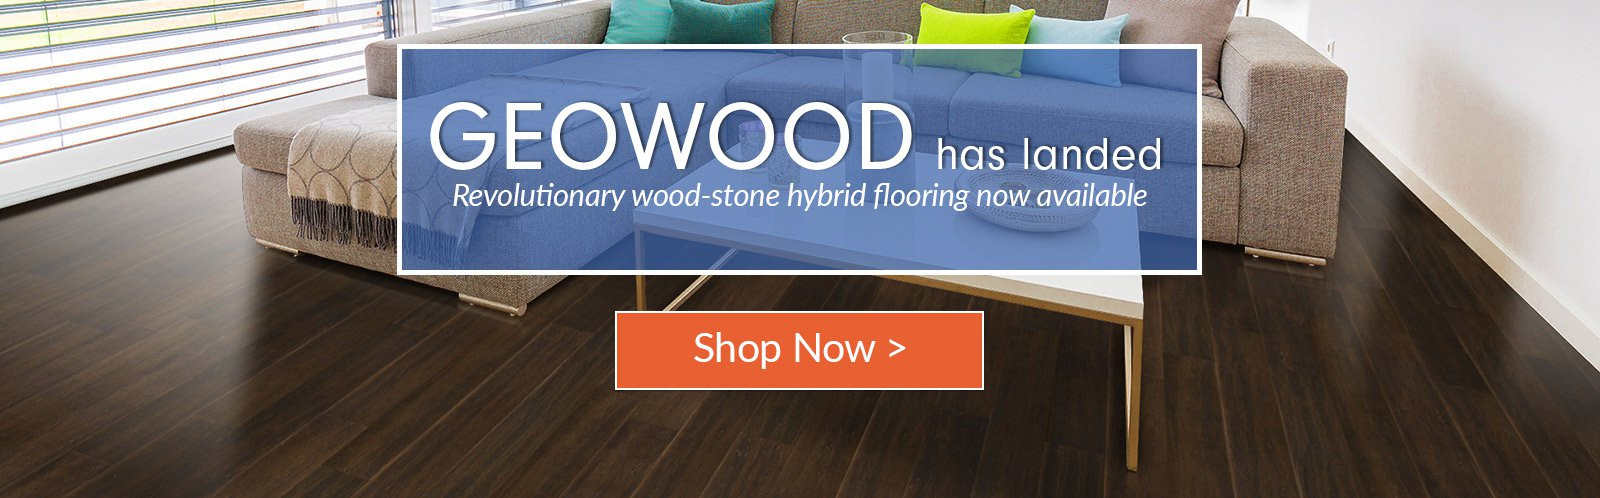 hardwood flooring sacramento area of green building construction materials and home decor cali bamboo pertaining to geowood launch homepage slider